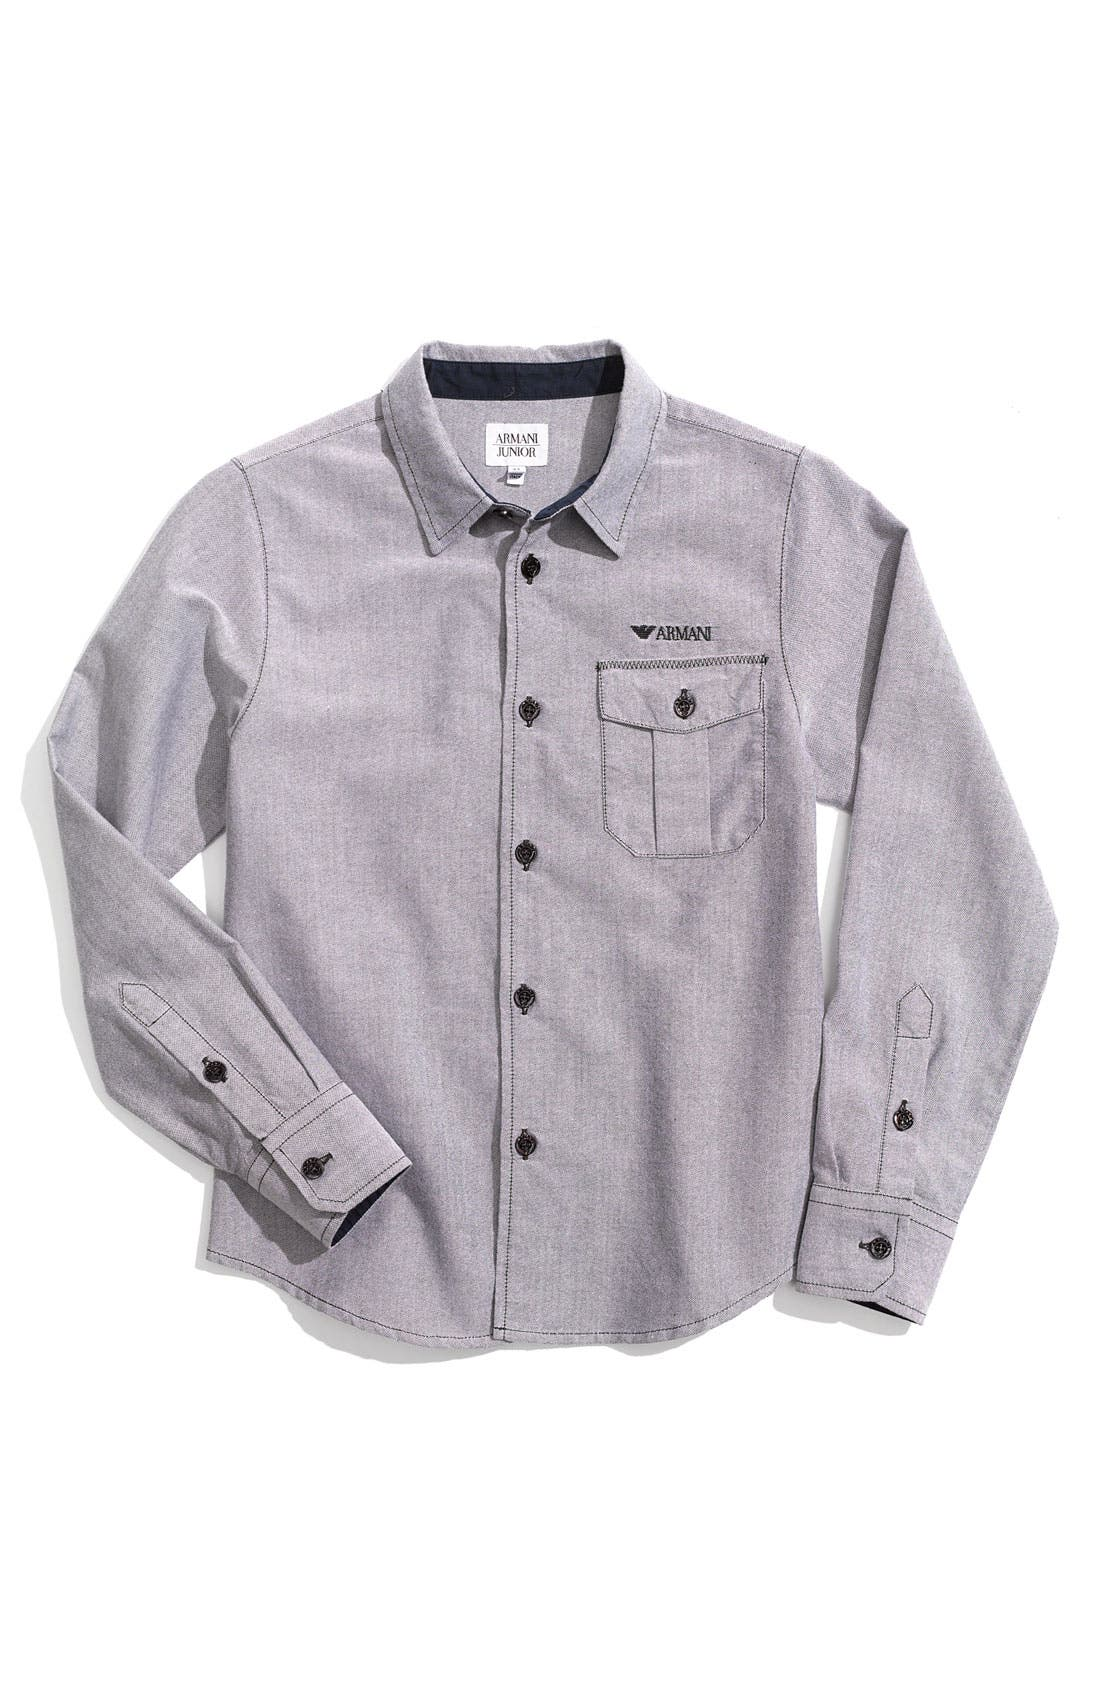 Main Image - Armani Junior Shirt (Little Boys)